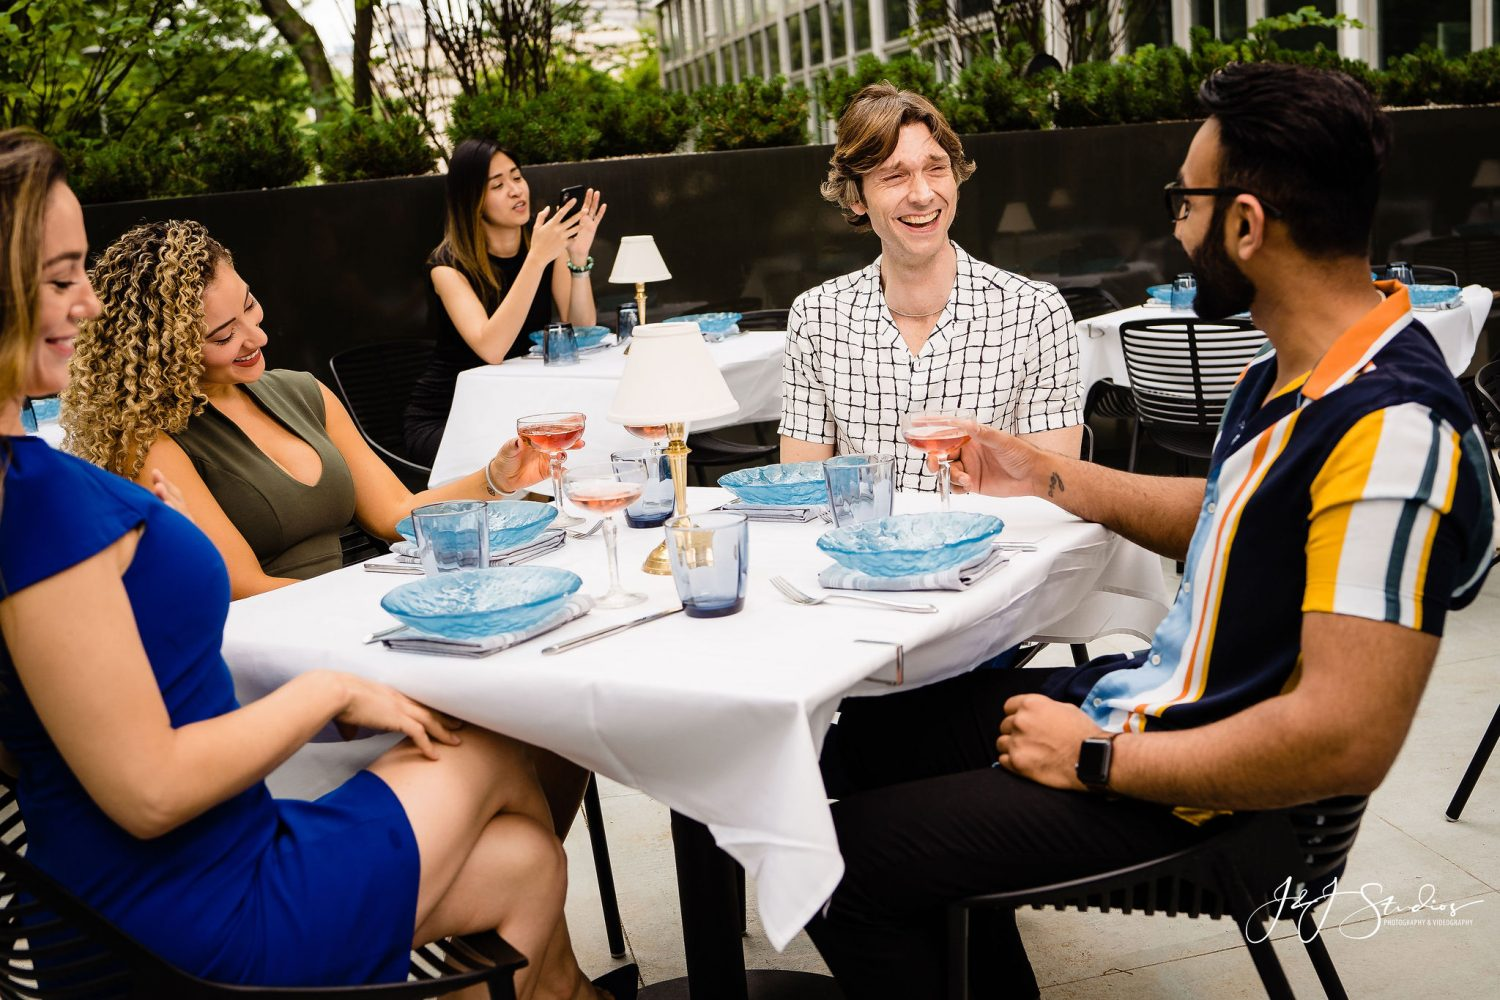 people laughing at restaurant photography